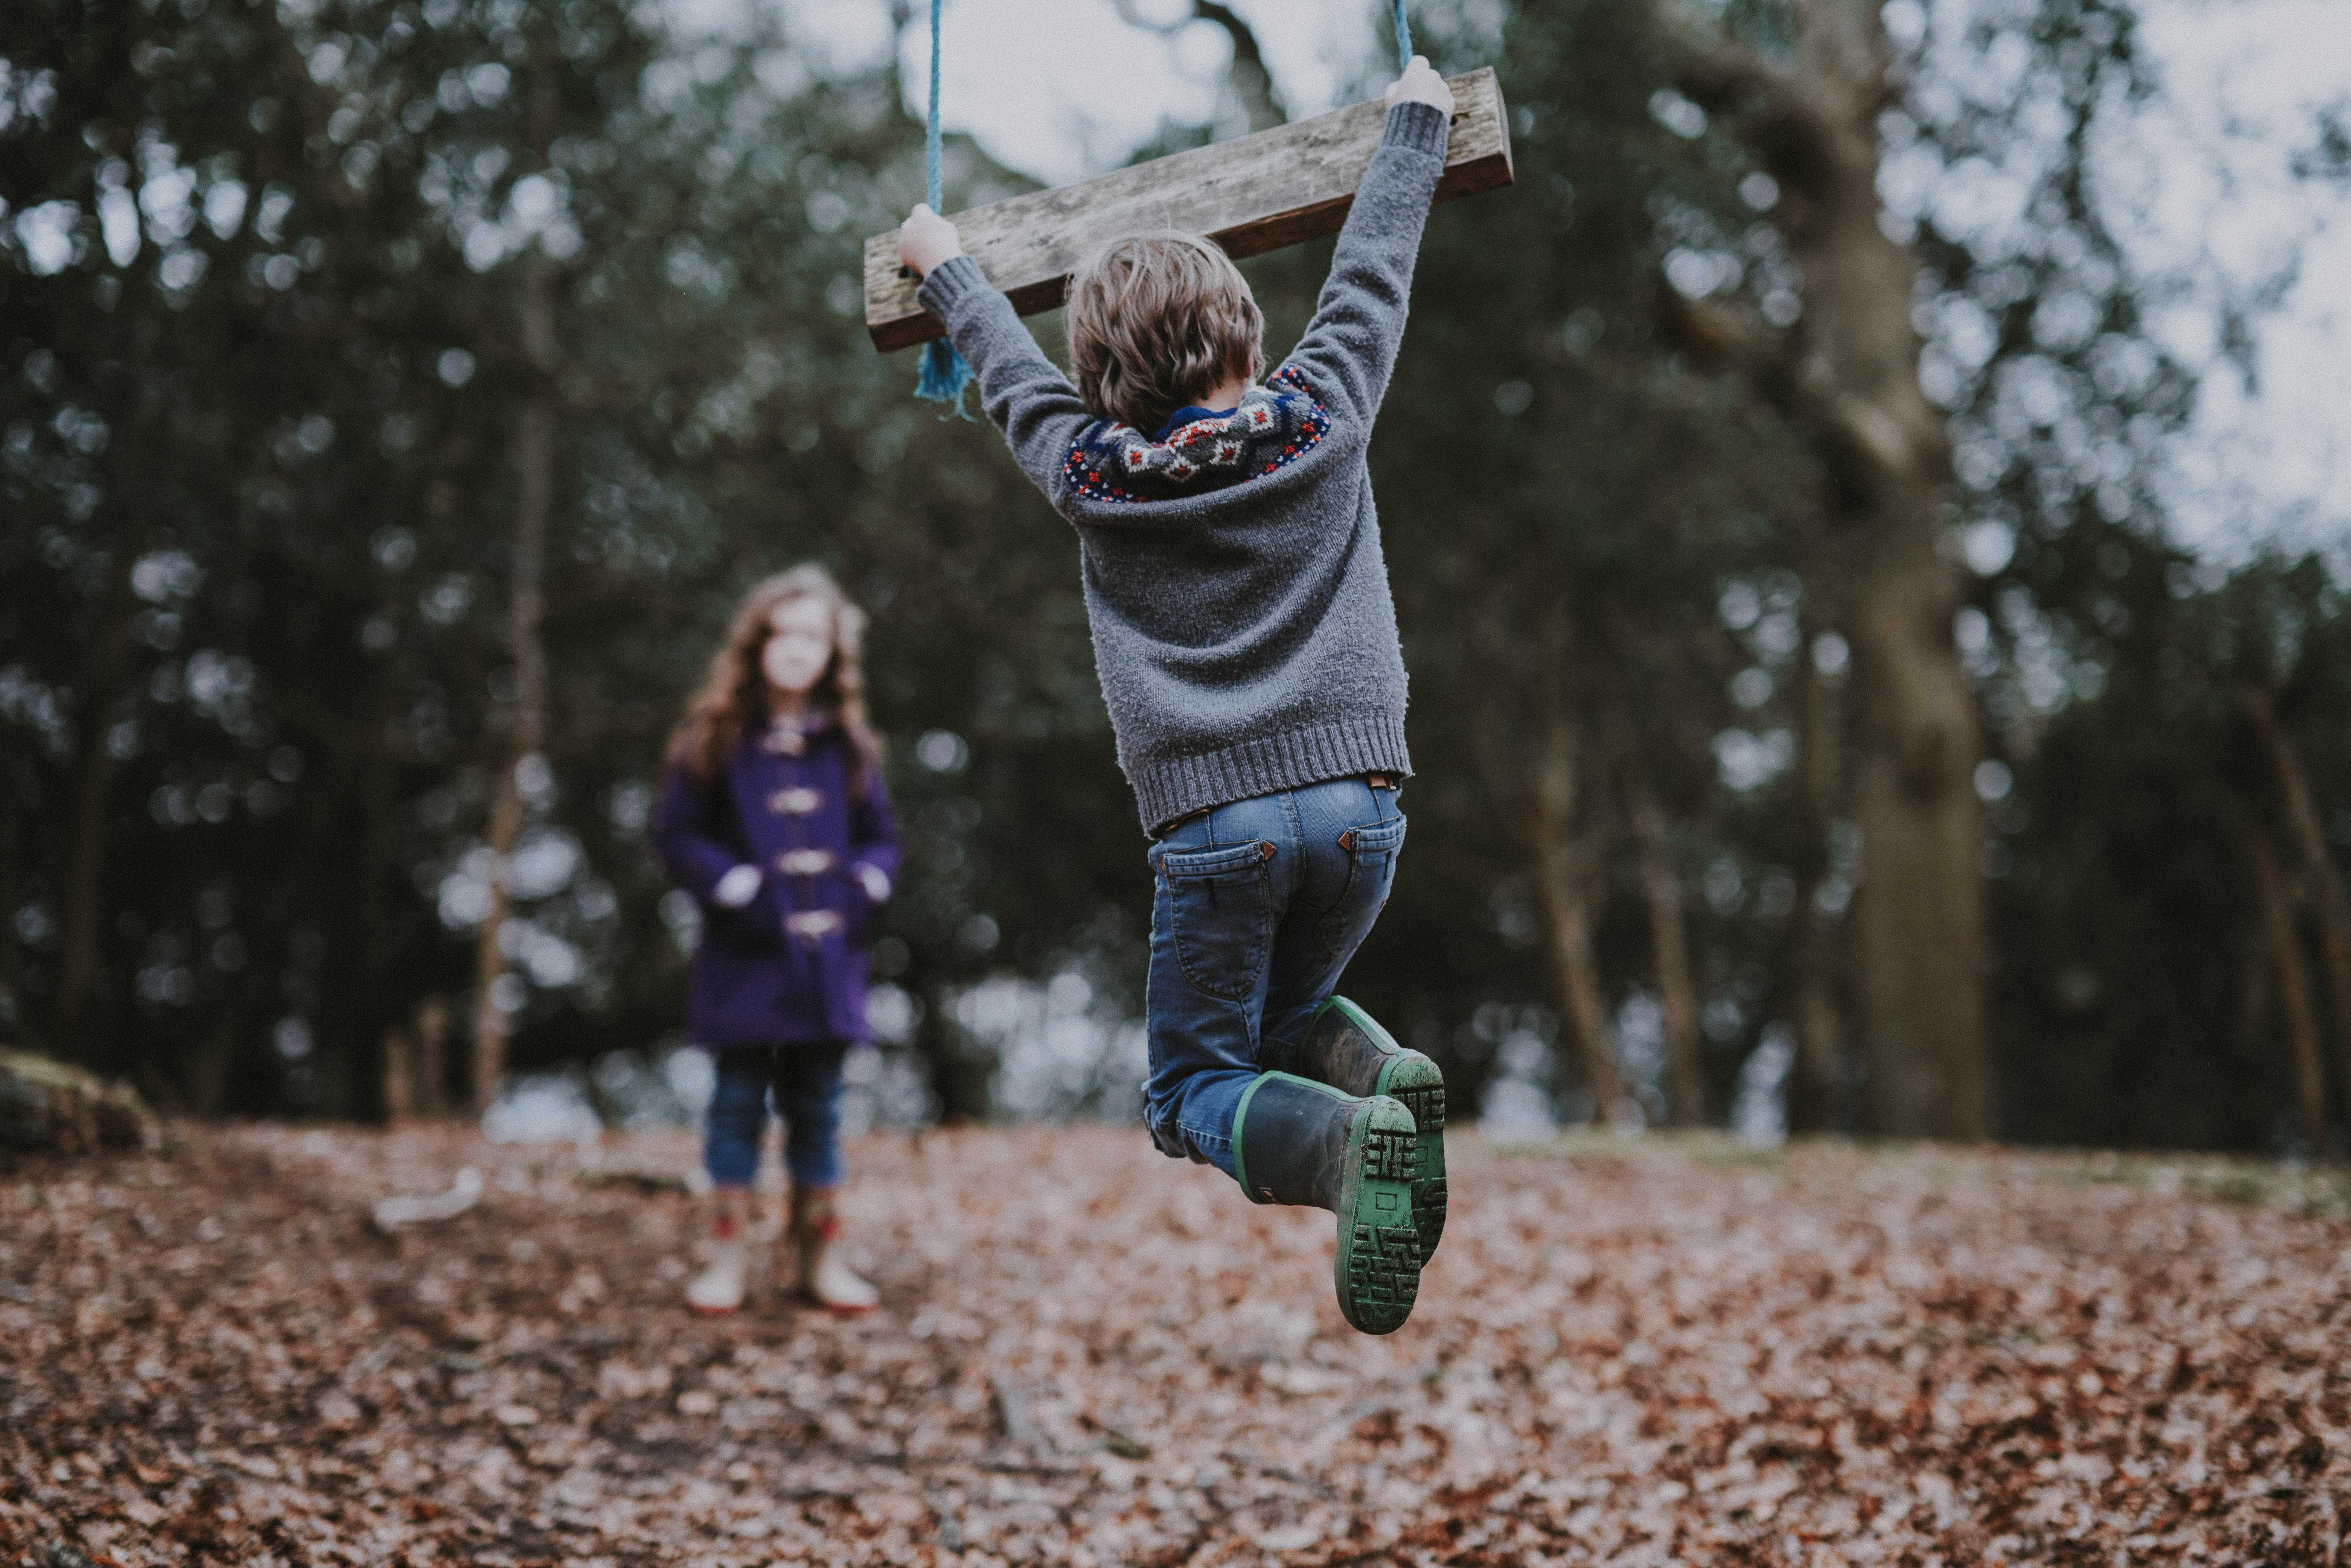 Why My Child With Reactive Attachment Disorder Acts